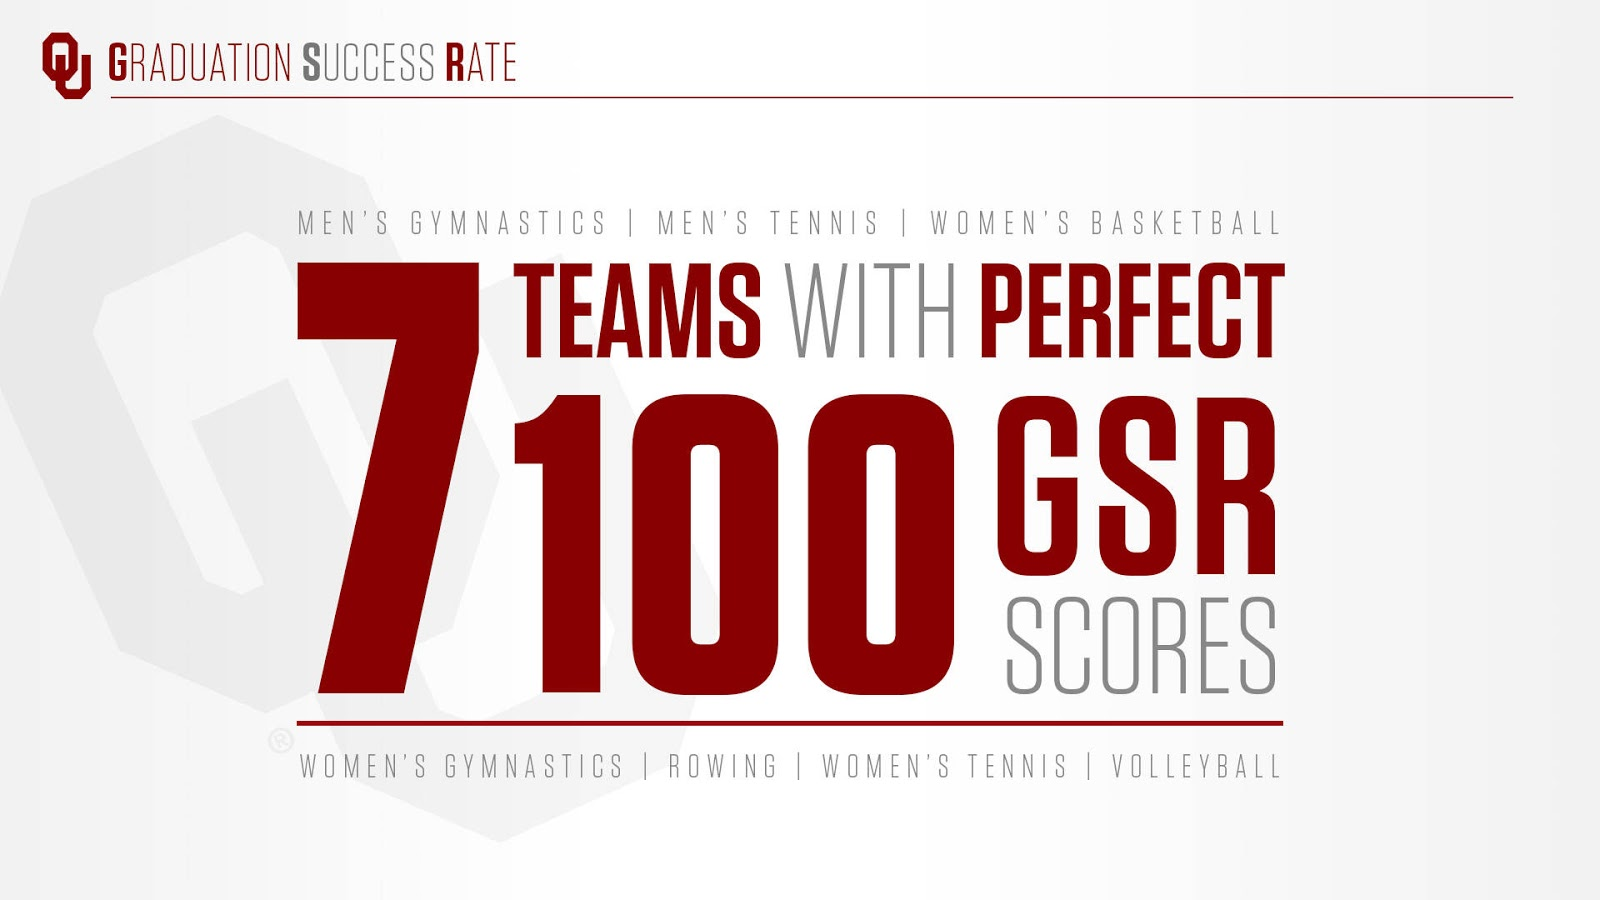 Sooners Achieve Another Record Graduation Success Rate ...